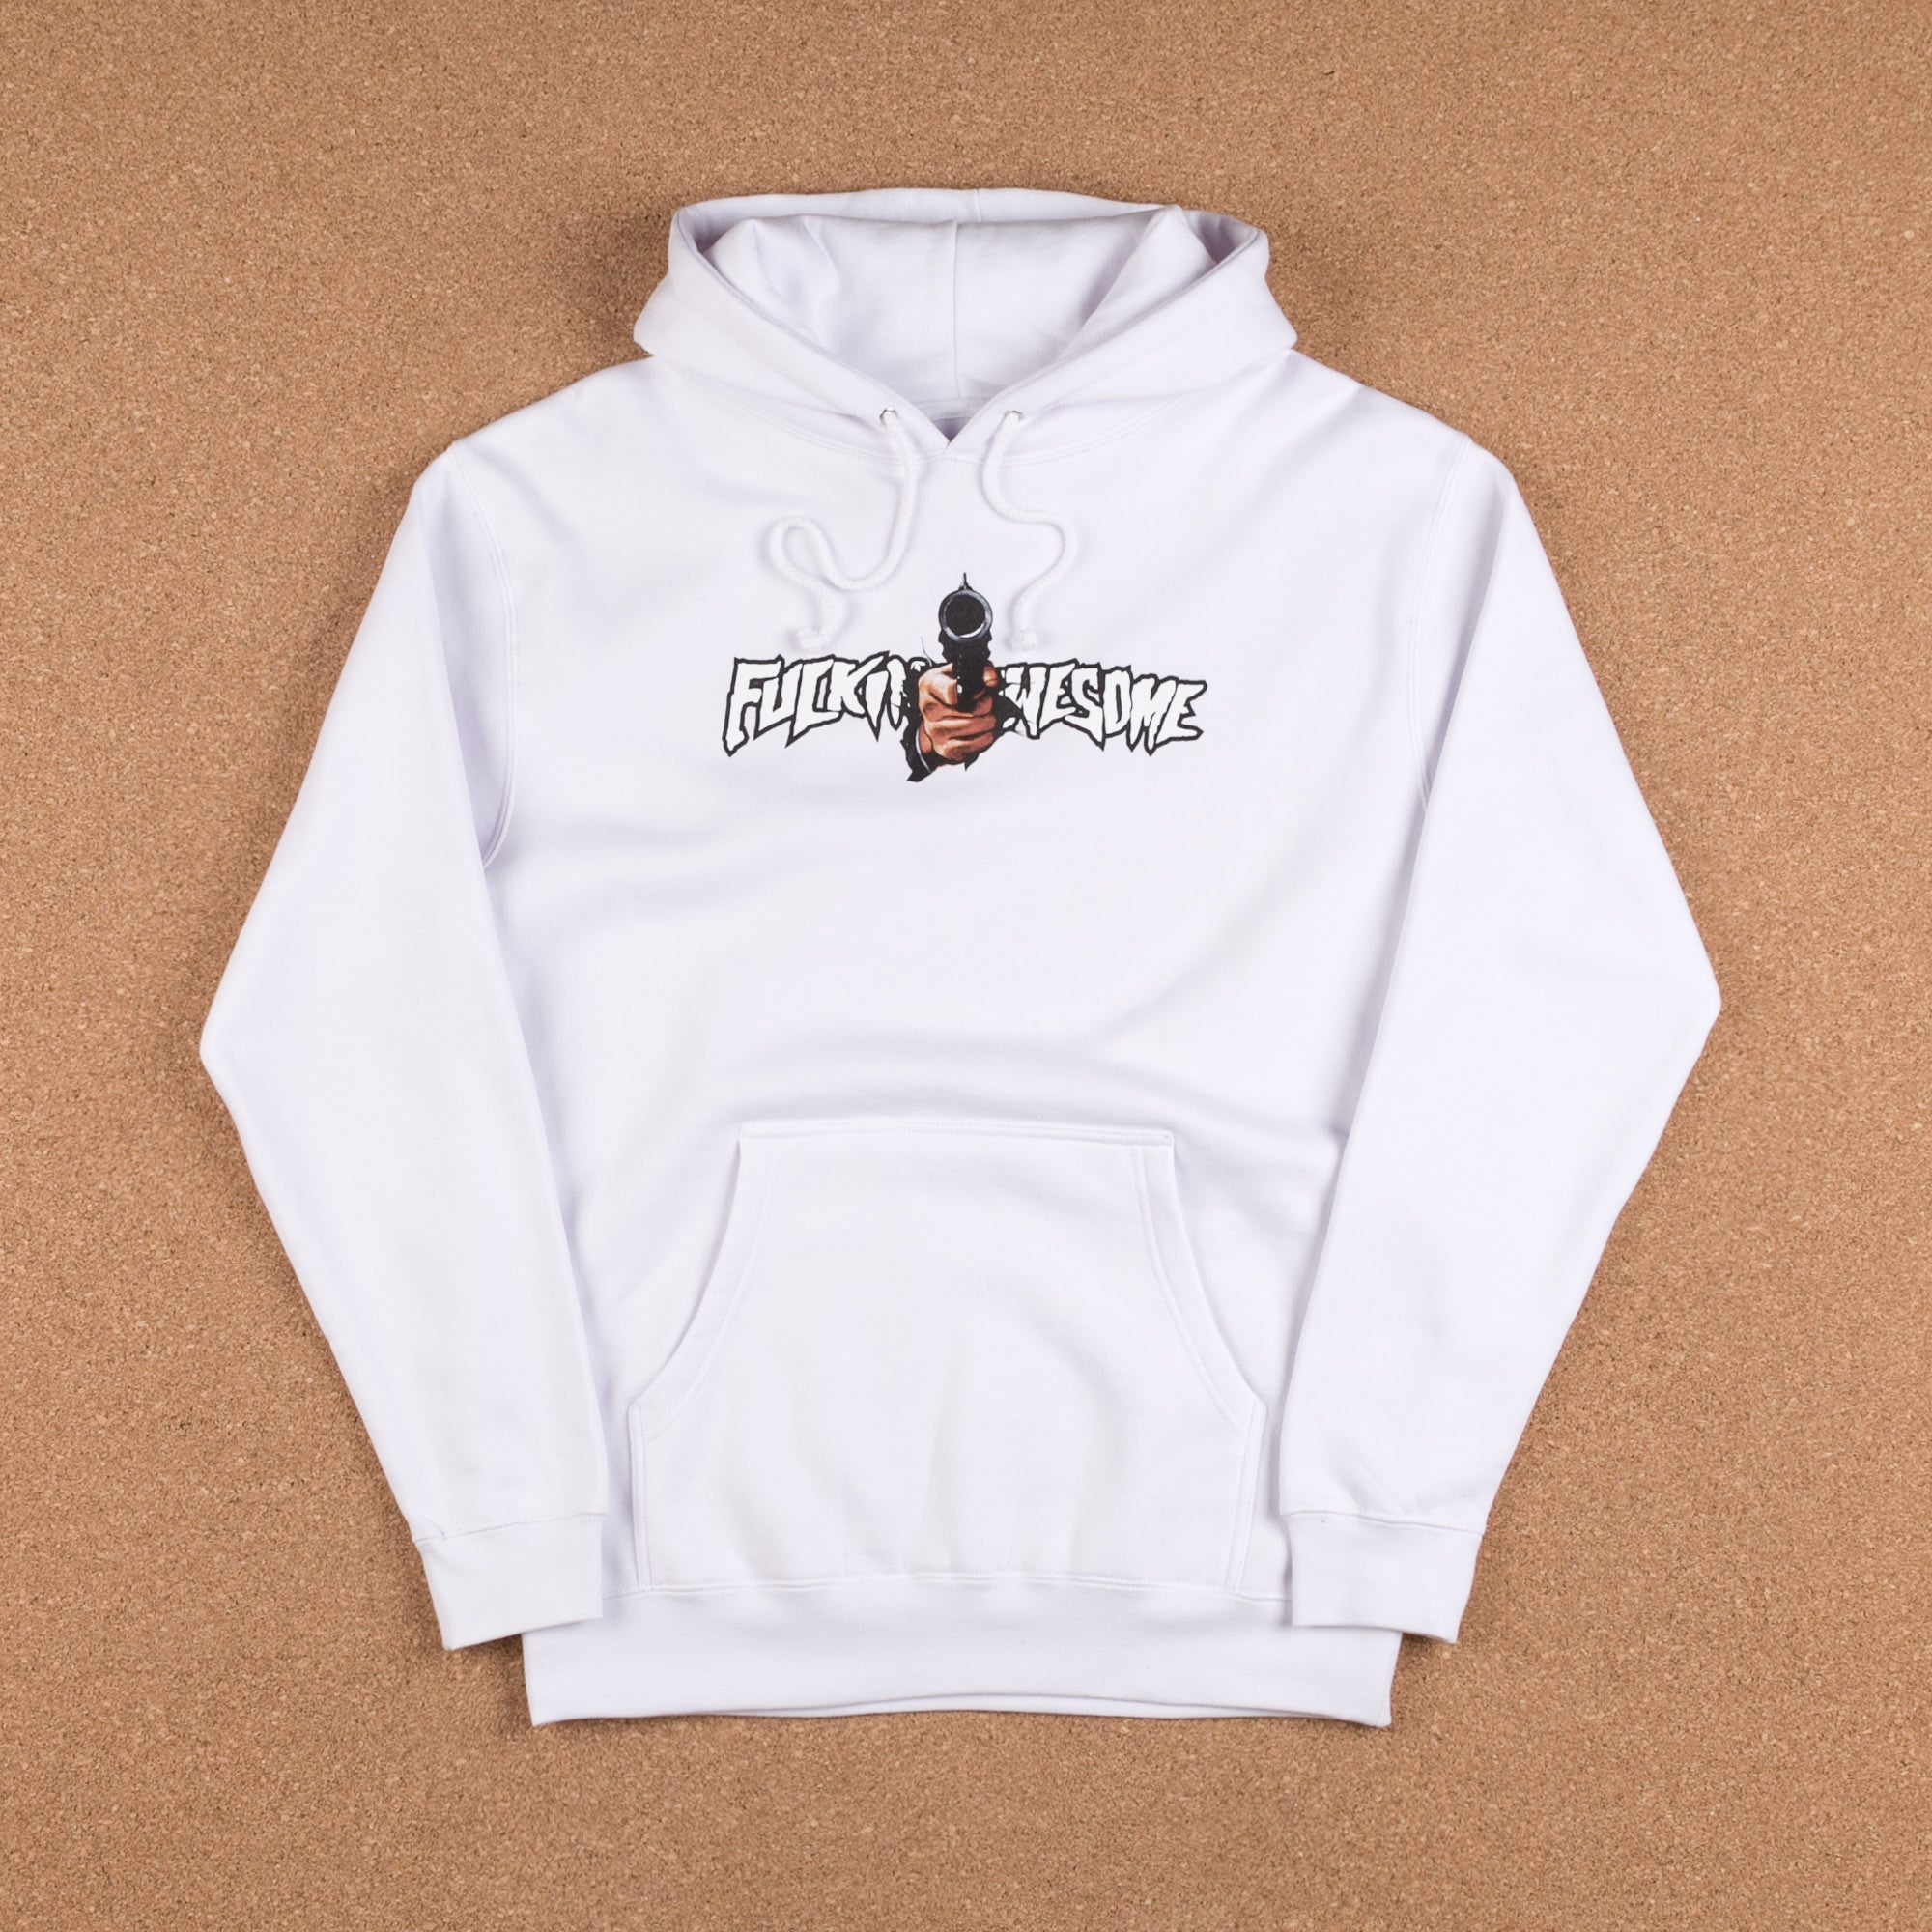 Fucking Awesome Breakthru Hooded Sweatshirt - White